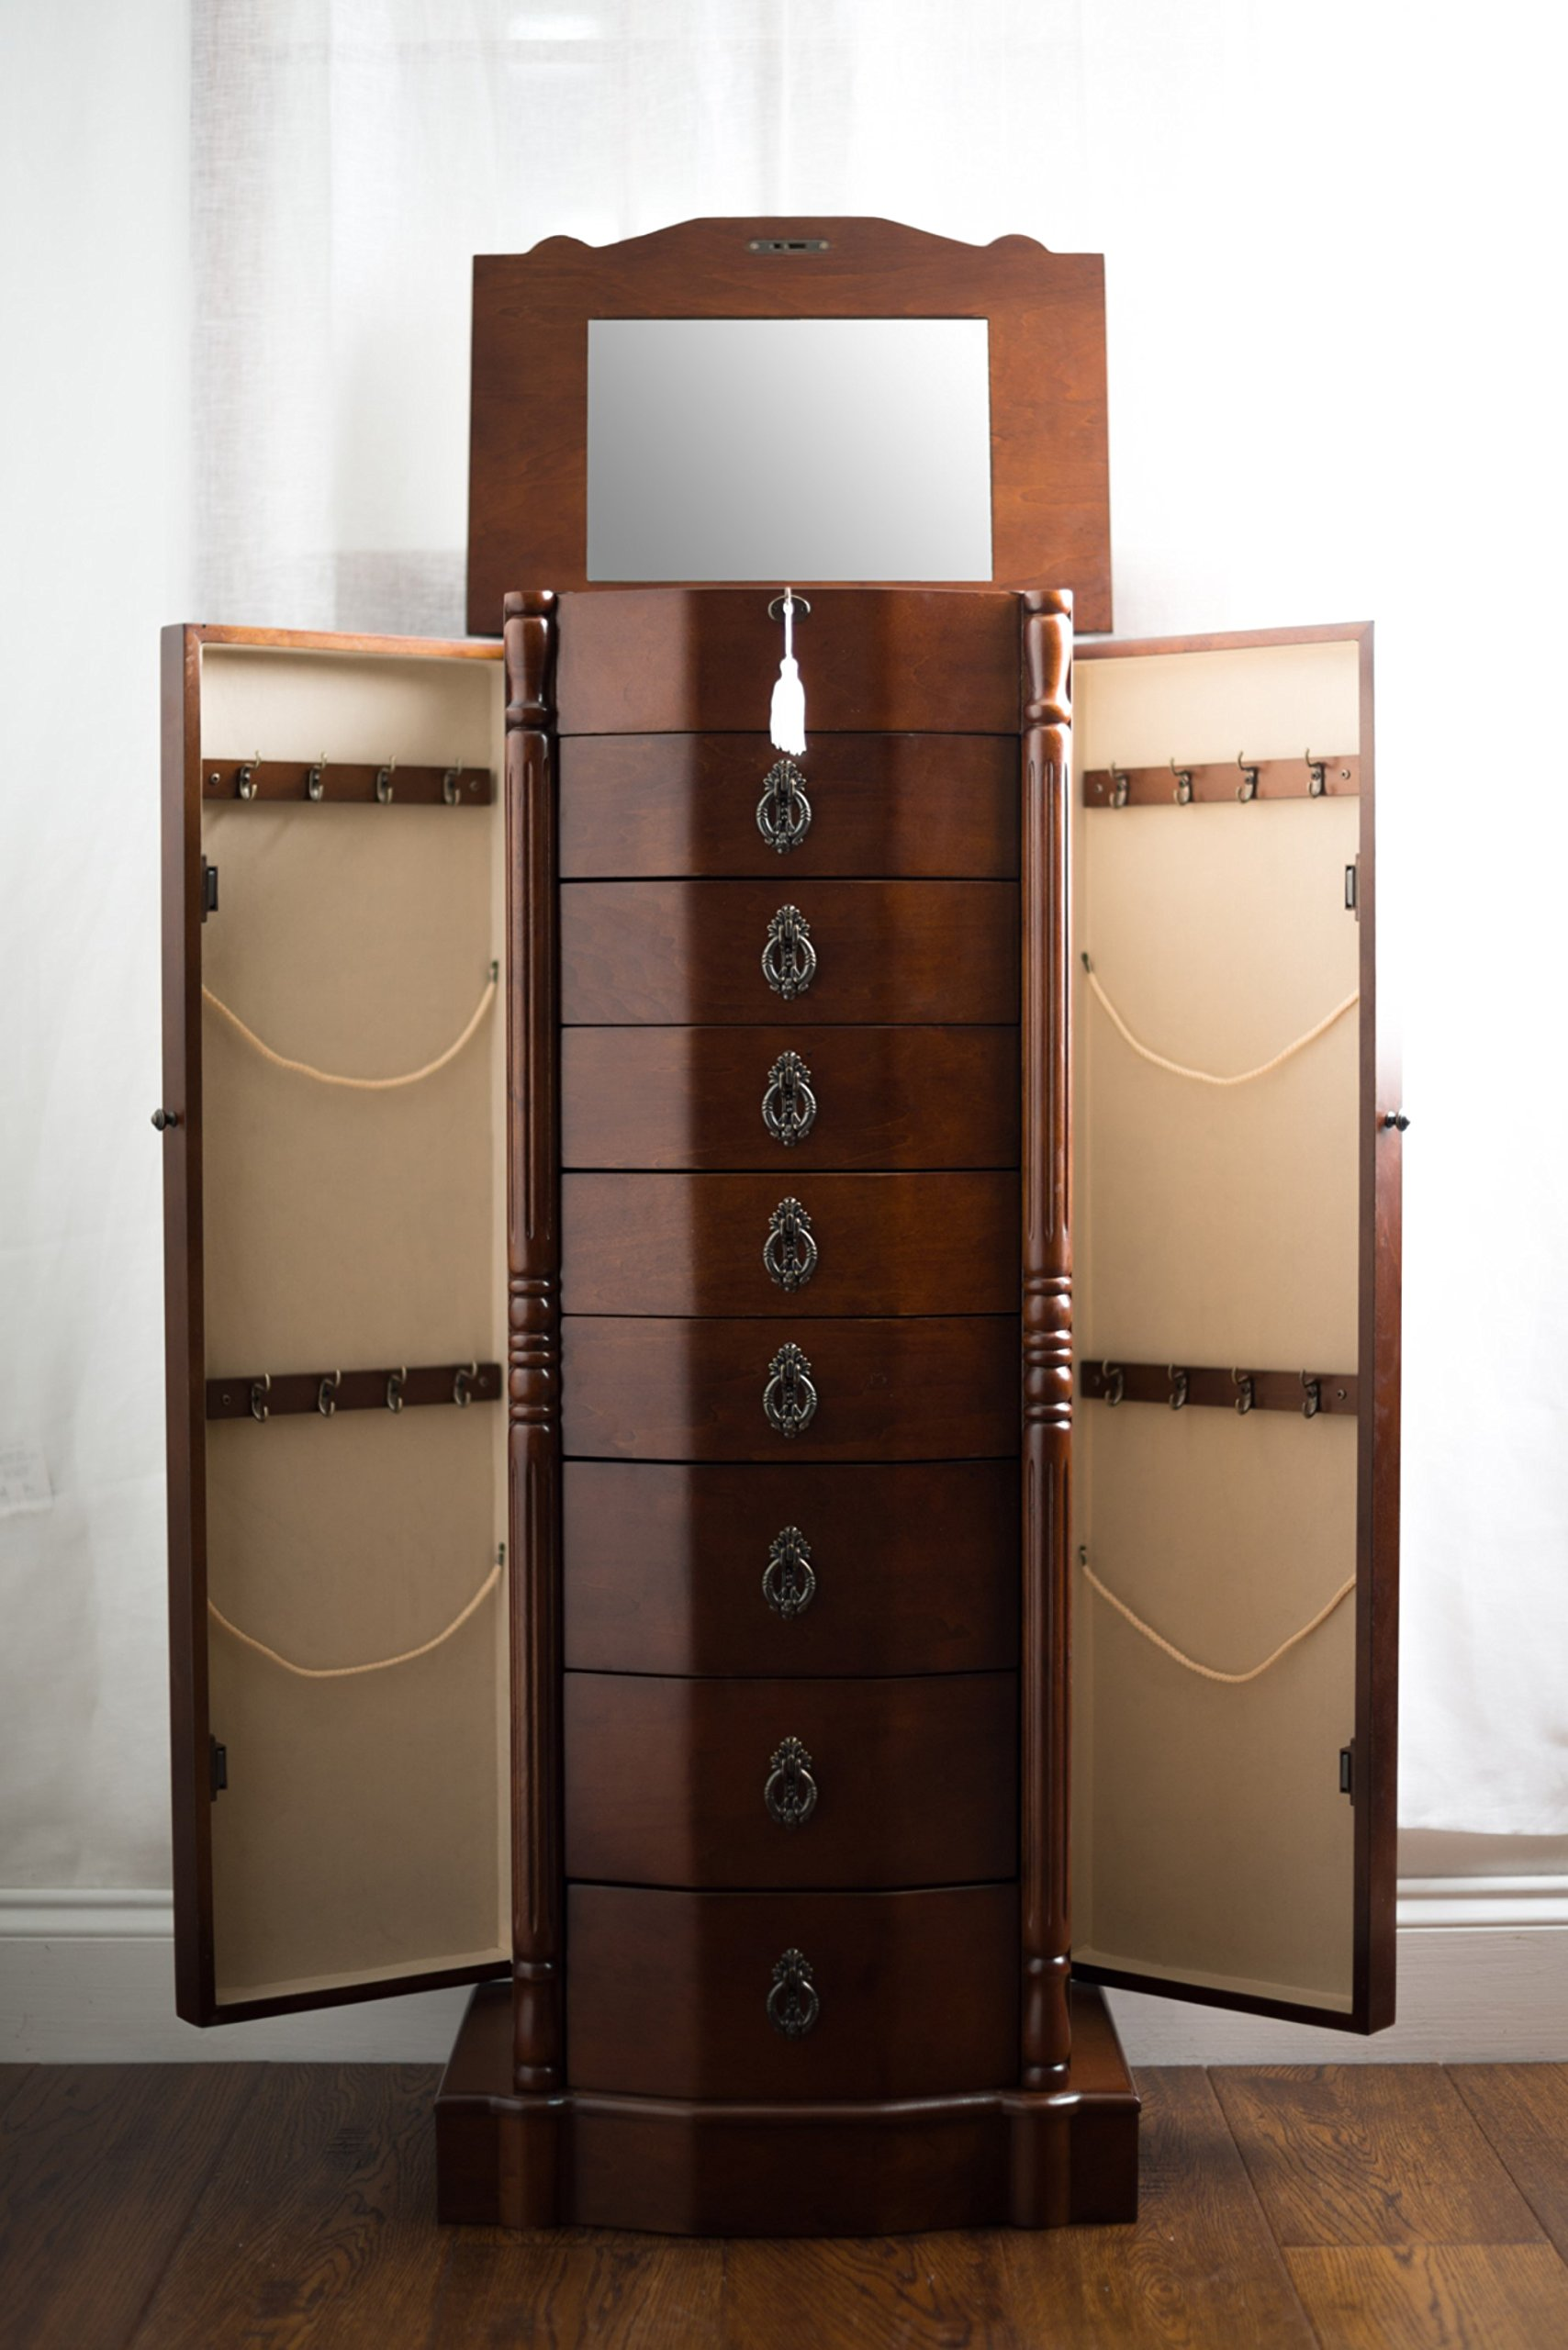 Hives and Honey 1004-382 Robyn Jewelry Armoire, 41'' H x 17.25'' W x 12.5'' D, Walnut by Hives and Honey (Image #2)